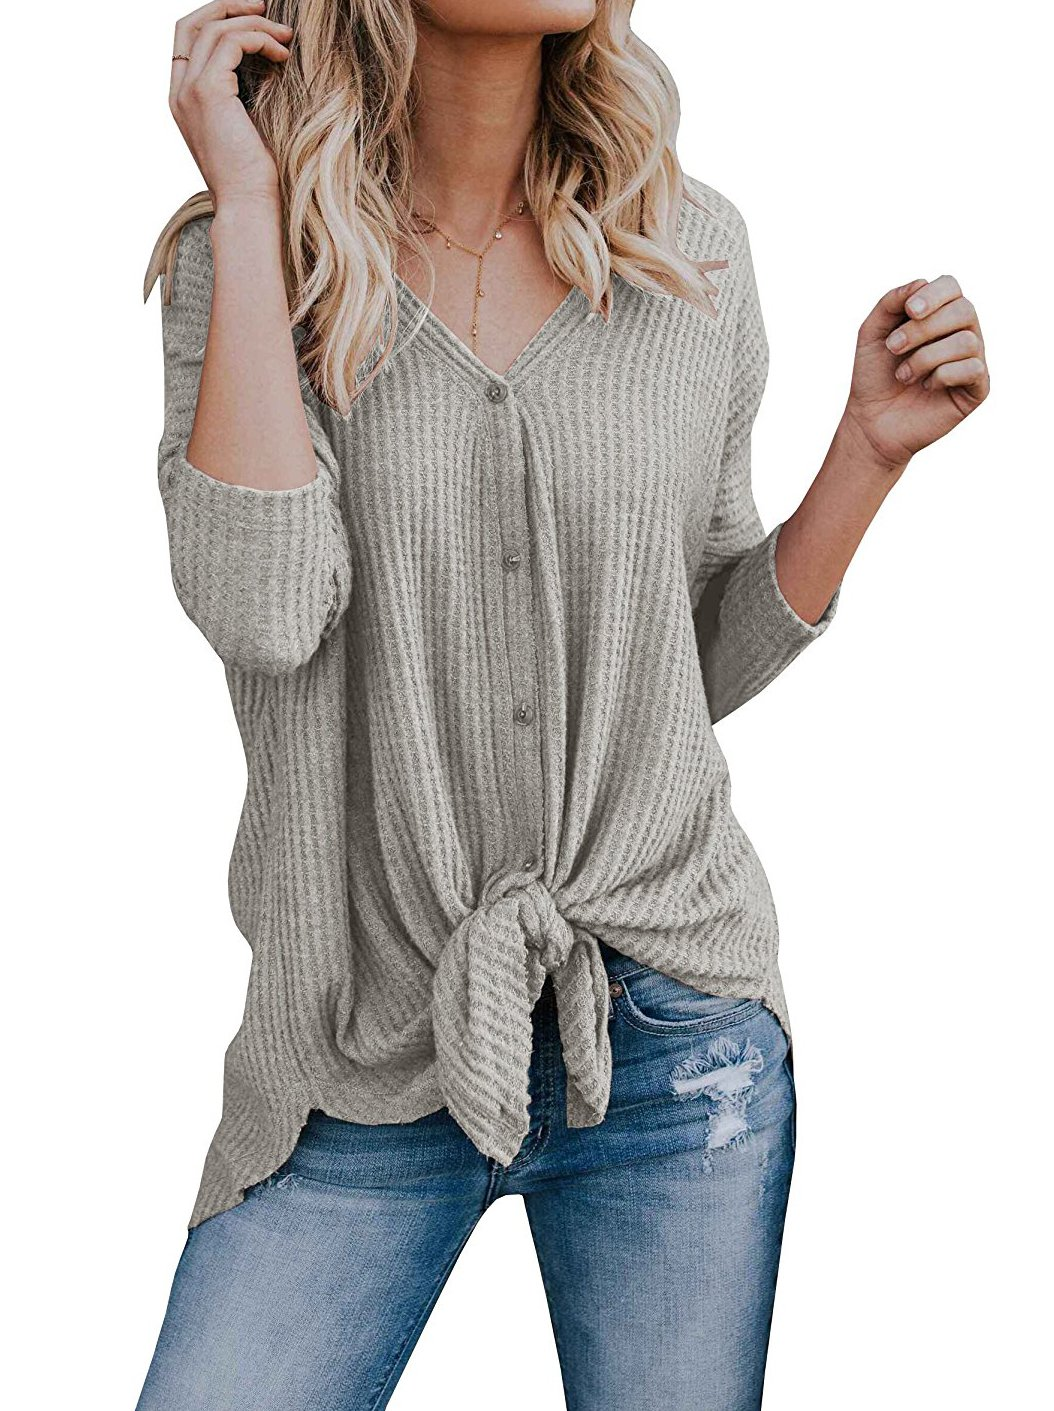 GOLDSTITCH Womens Vintage Loose fit Tunic Blouse Tie Knot Henley Tops Bat Wing Plain Shirts